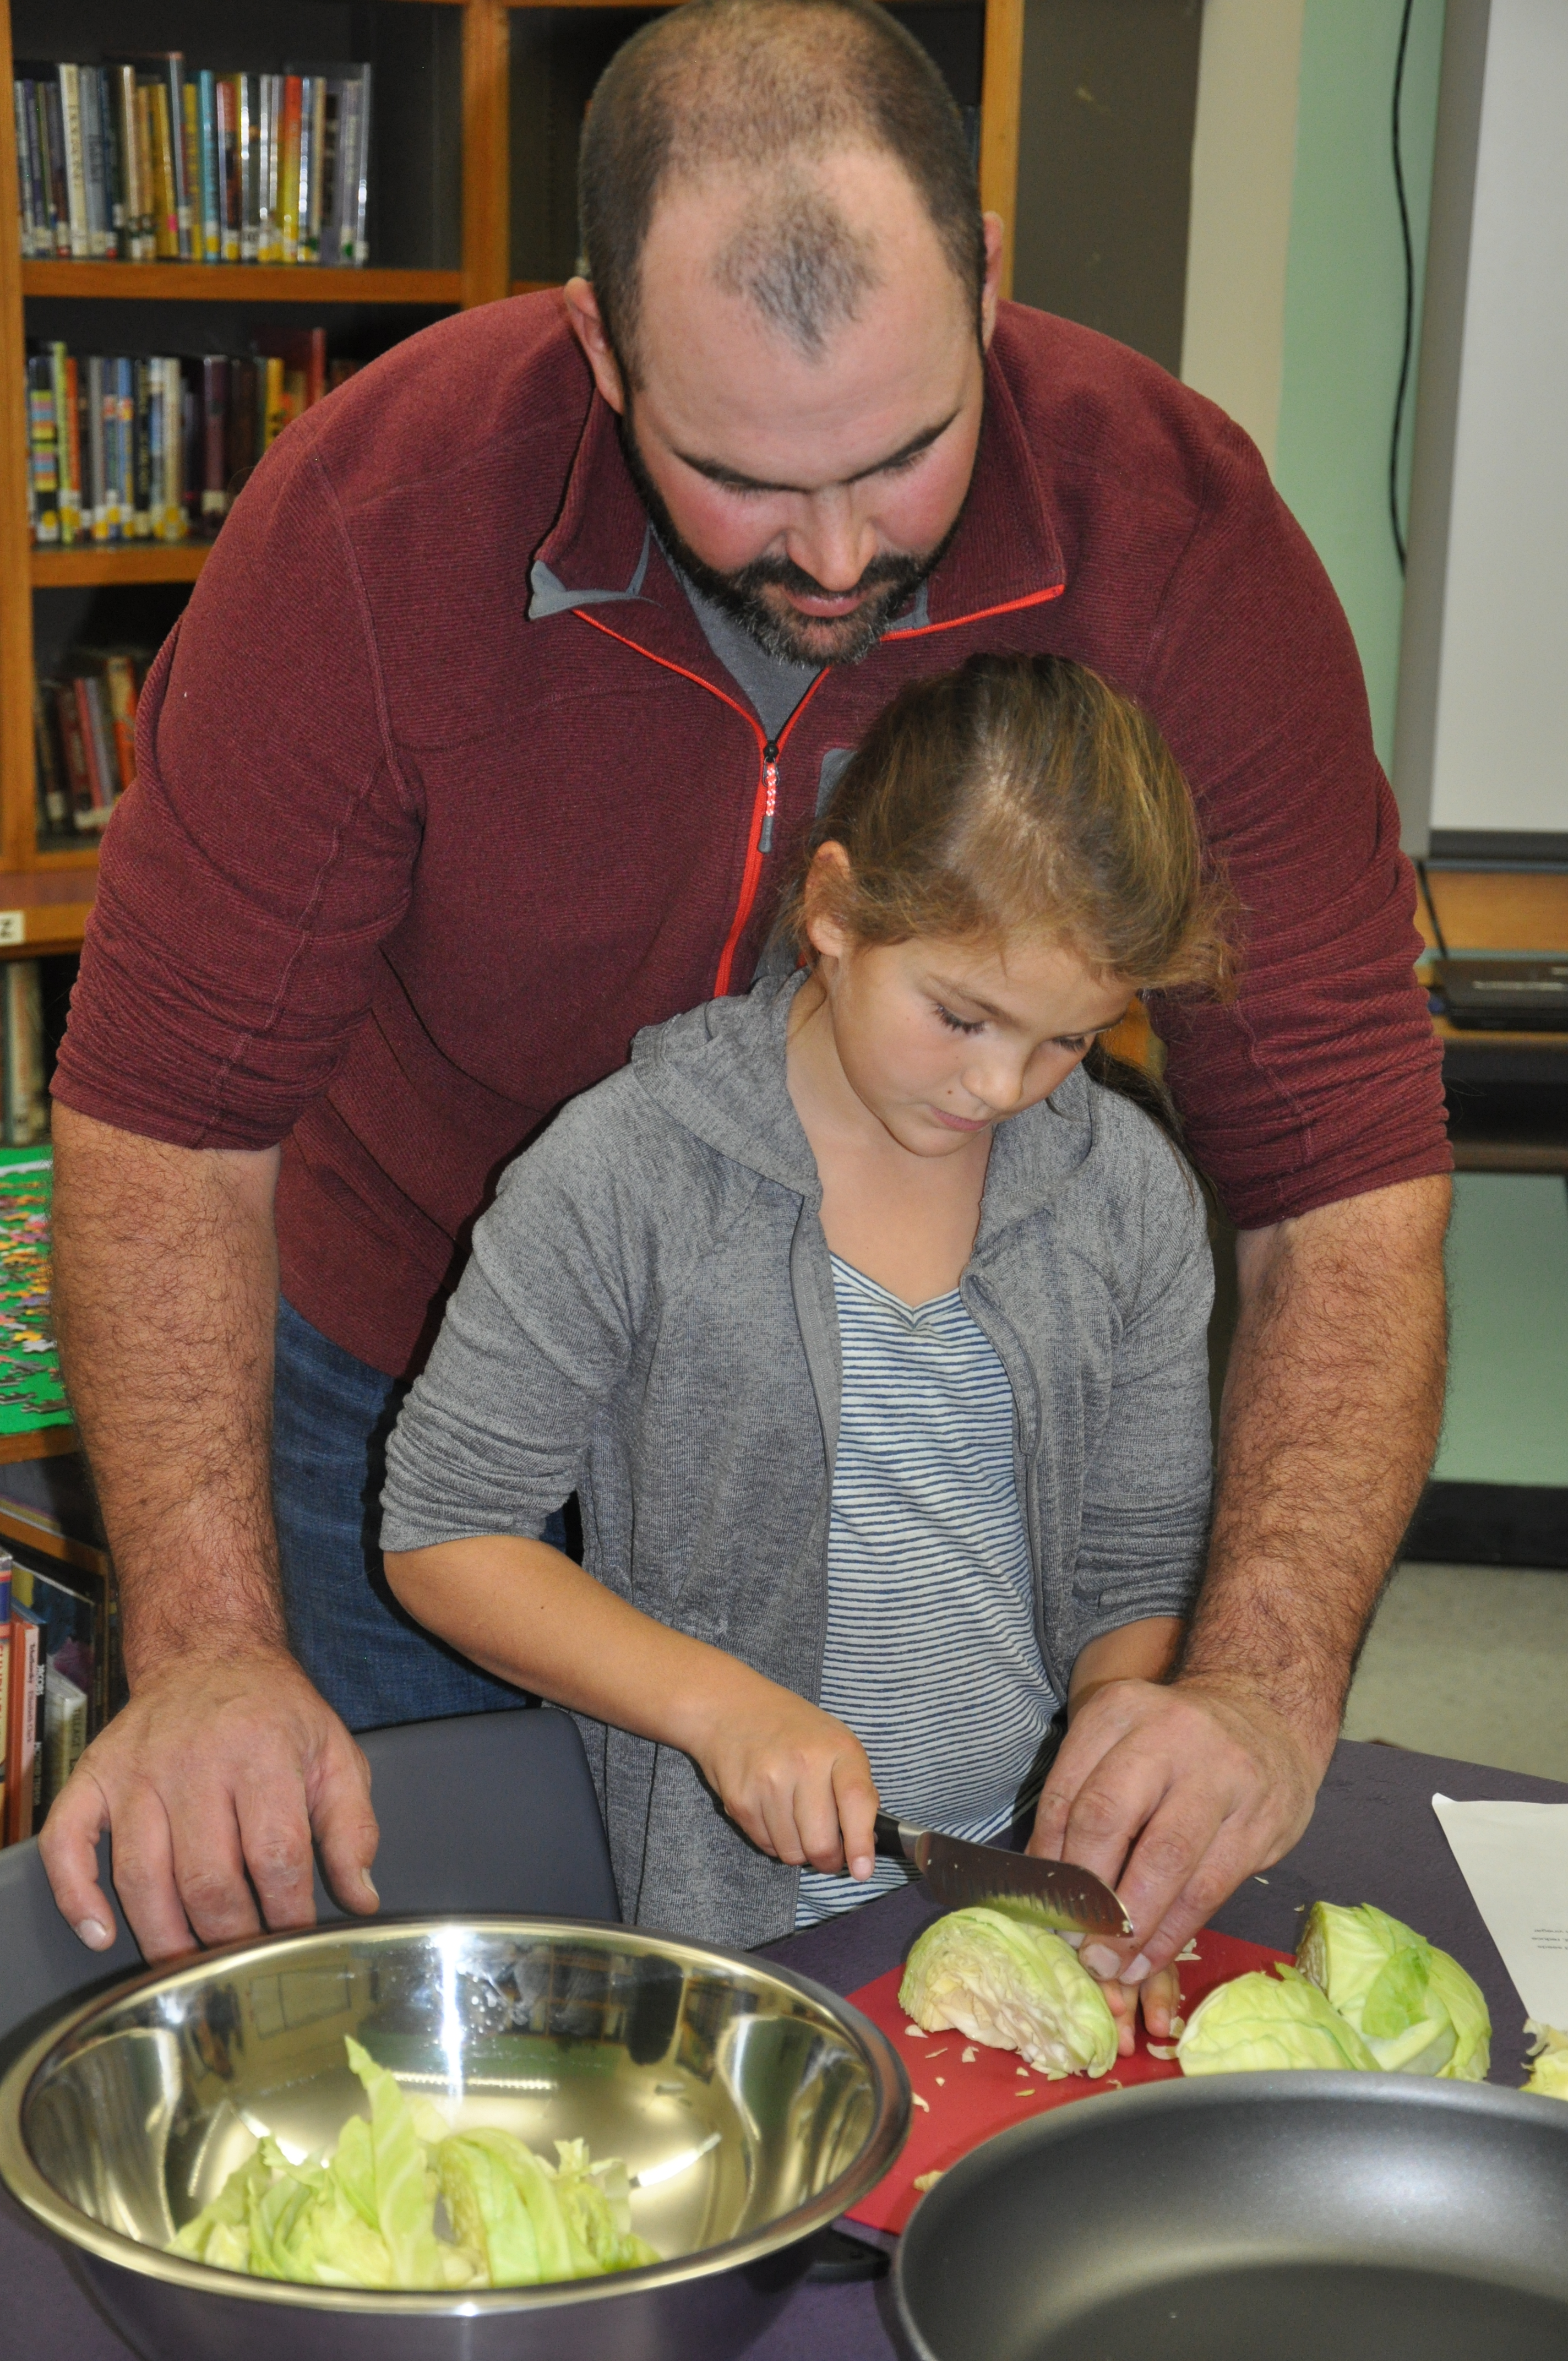 Fletcher Elementary student processes cabbage as part of a cooking class